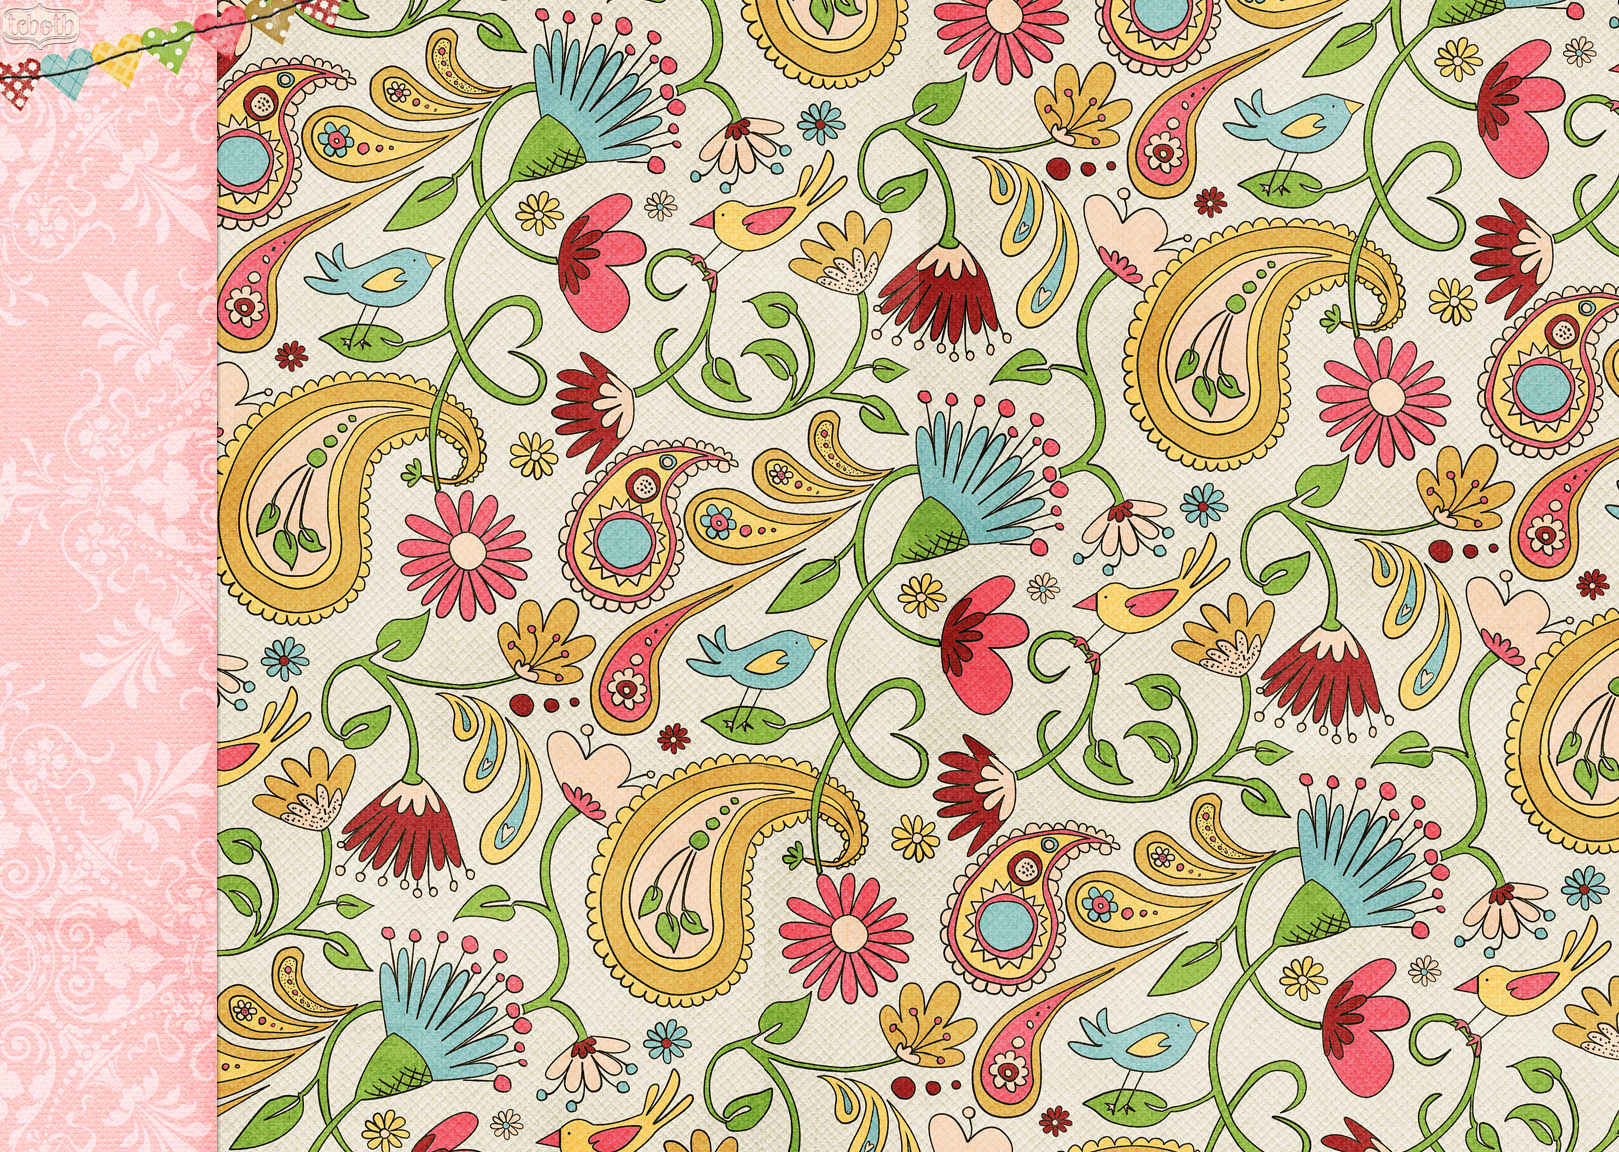 Vintage Paisley Desktop Wallpaper